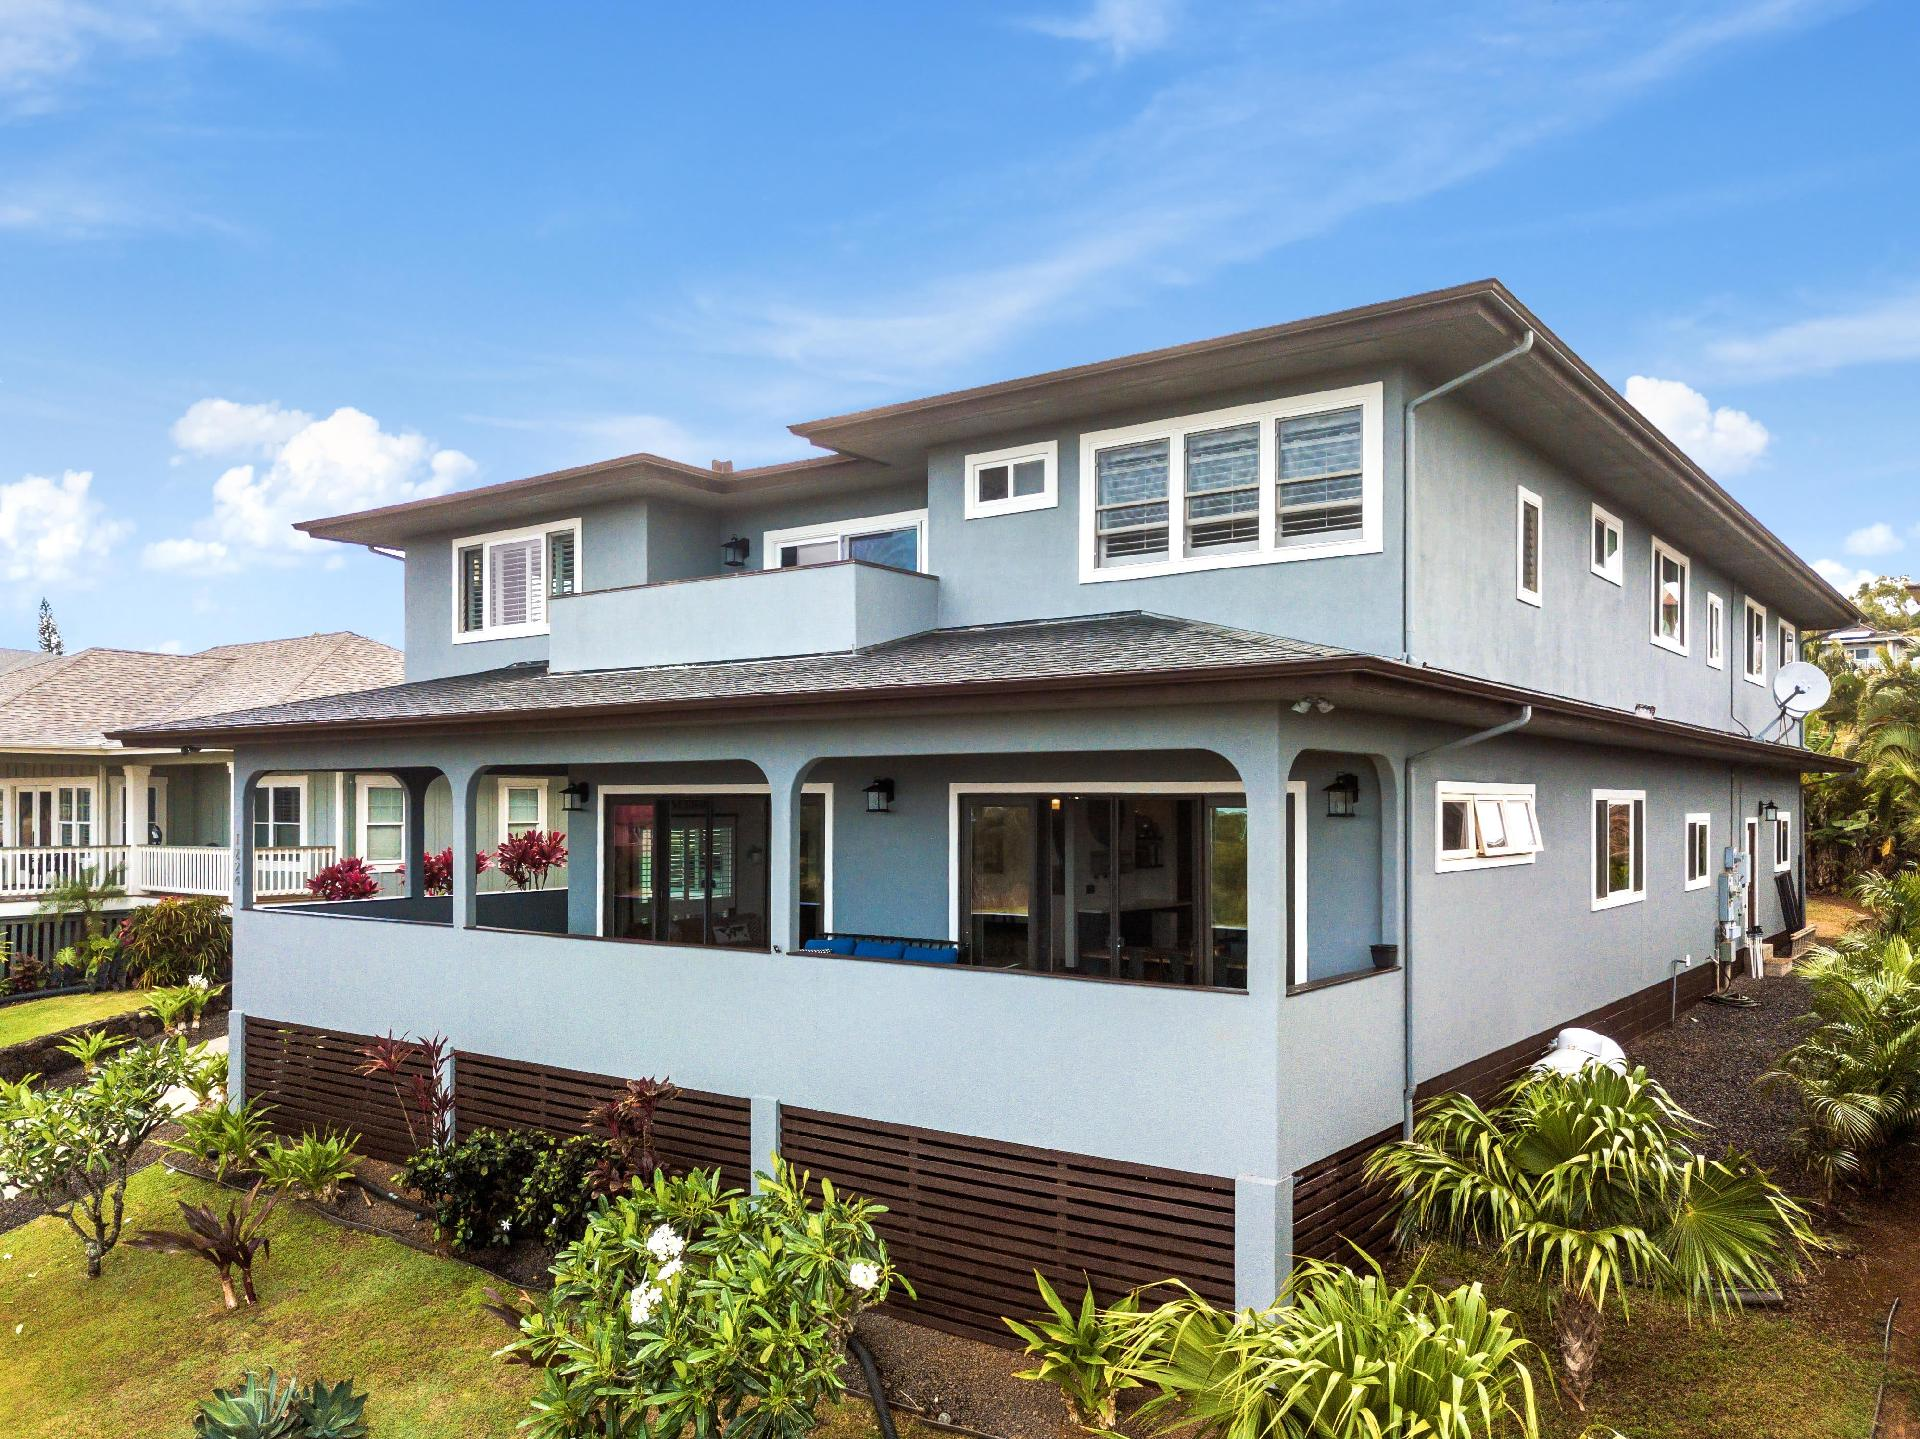 Focus on Curb Appeal to Sell Your Home For More Main Photo